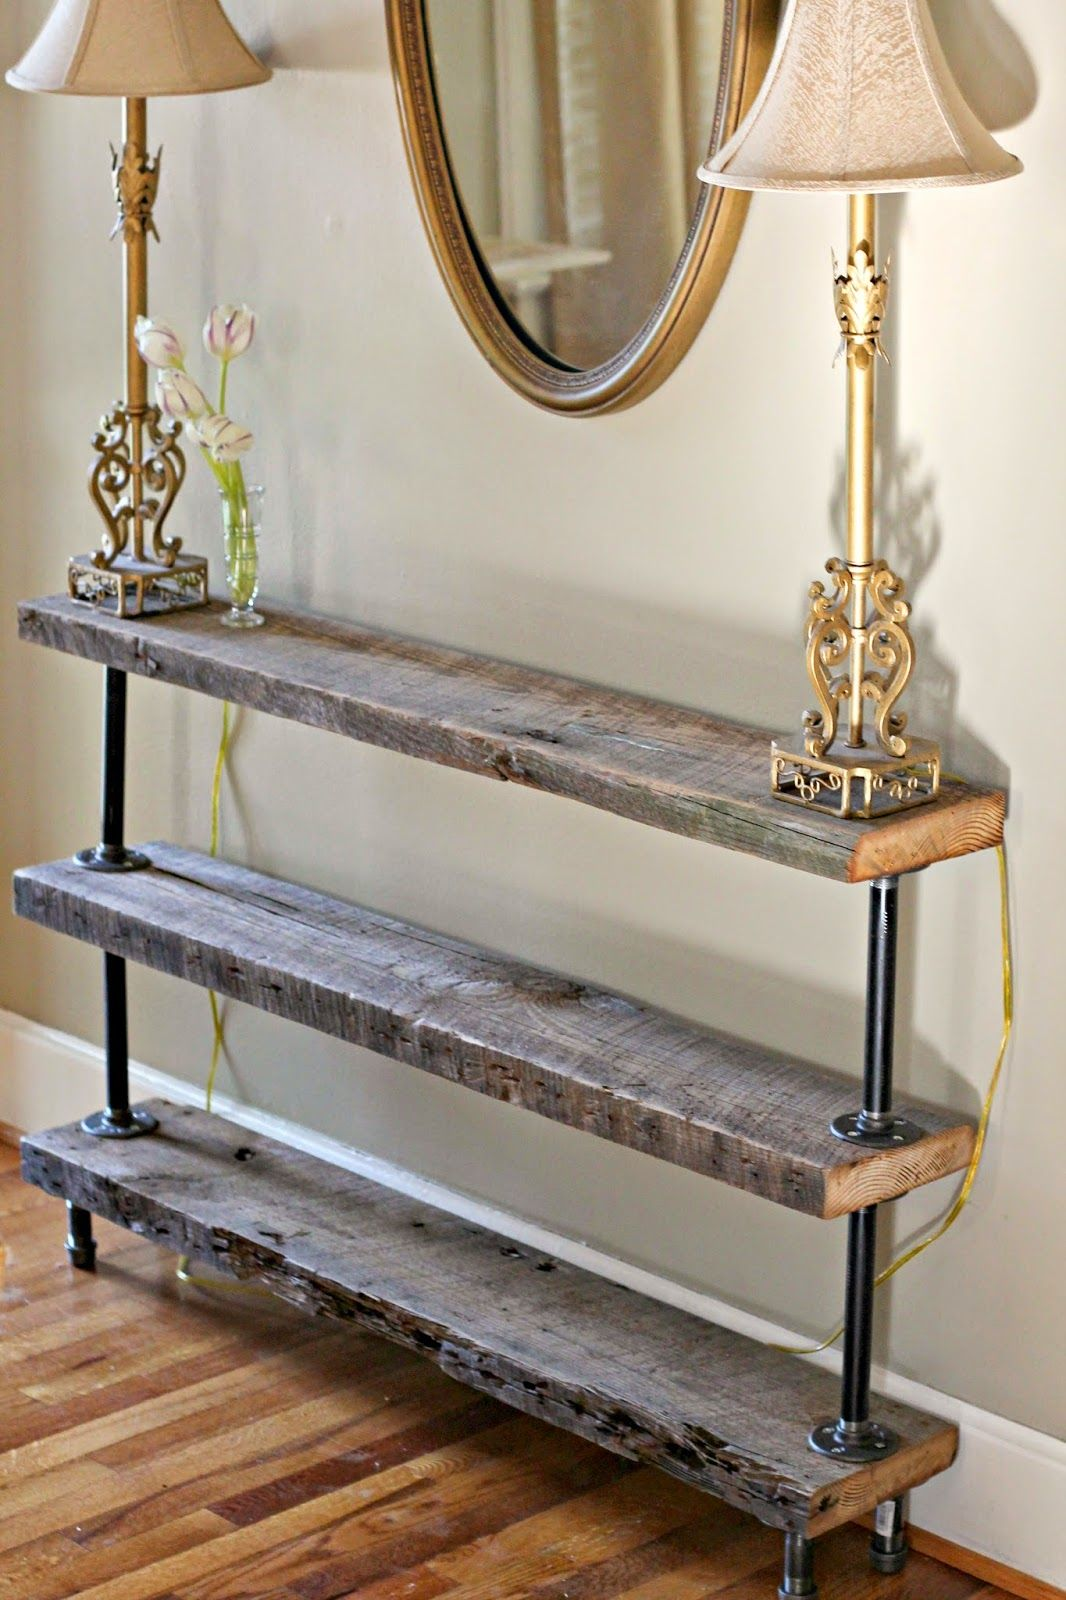 How to make a sofa table from 1 x 6 lumber - Diy Reclaimed Wood Console Table The Reedy Review